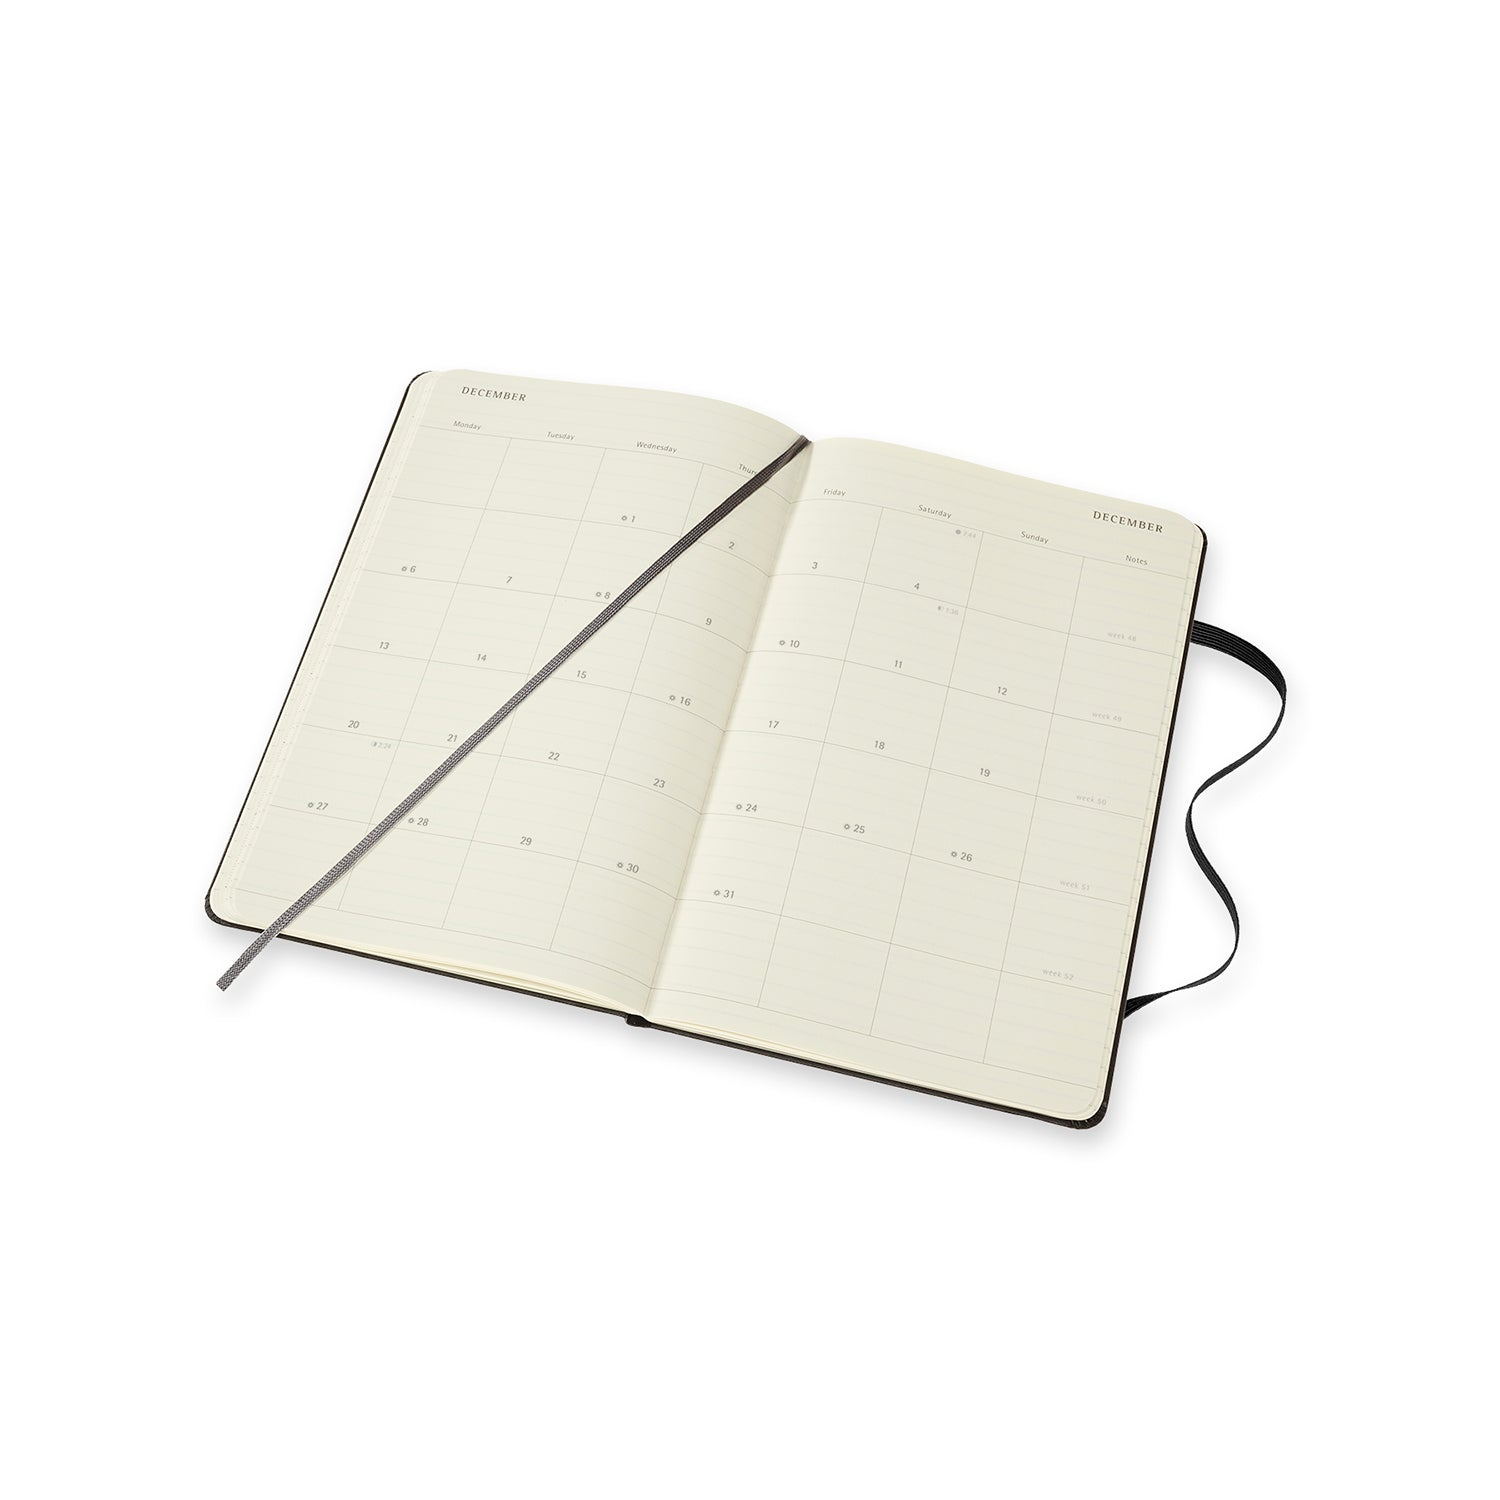 2021 Moleskine Monthly Notebook Diary/Planner Lg